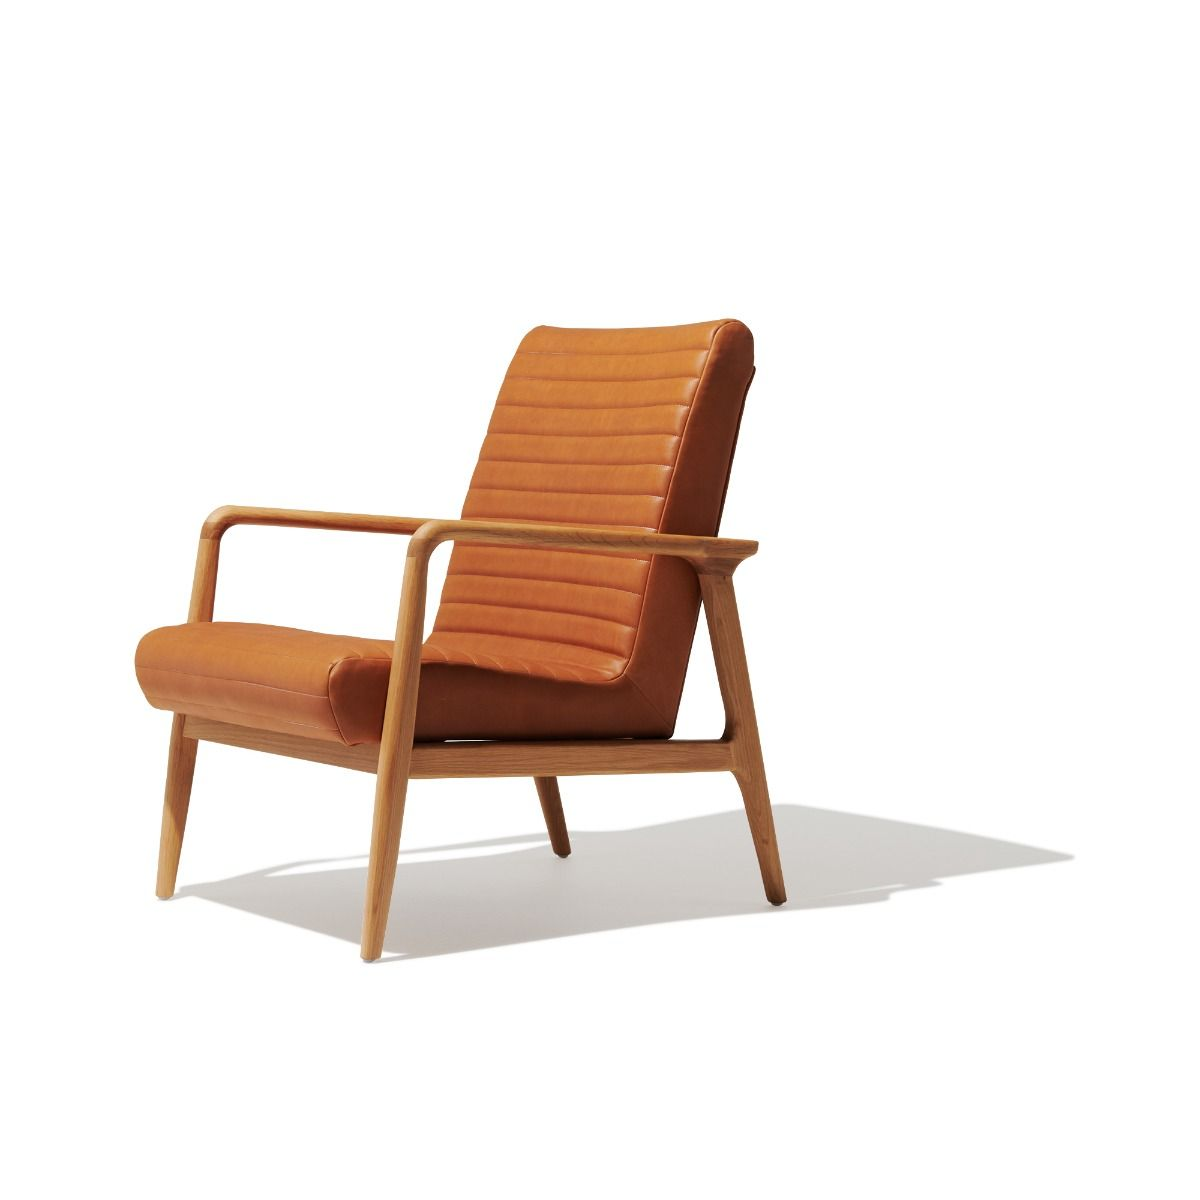 Format Lounge Chair Wooden Lounge Chair Chair Lounge Chair